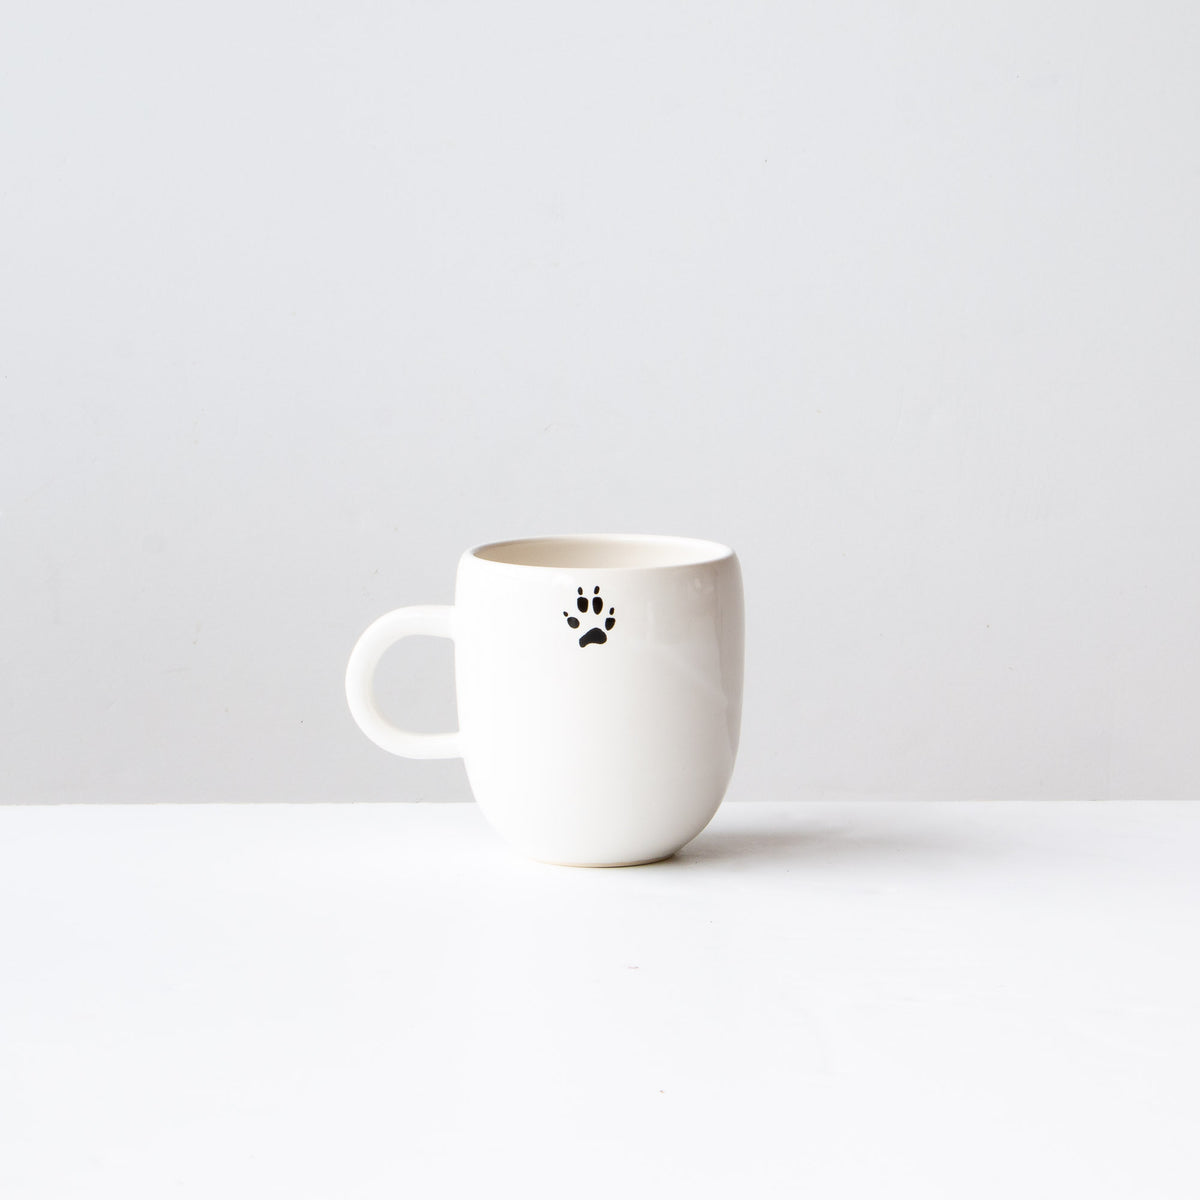 rear View - Red Fox - Handmade Porcelain Coffee Mug / Cup - Sold by Chic & Basta